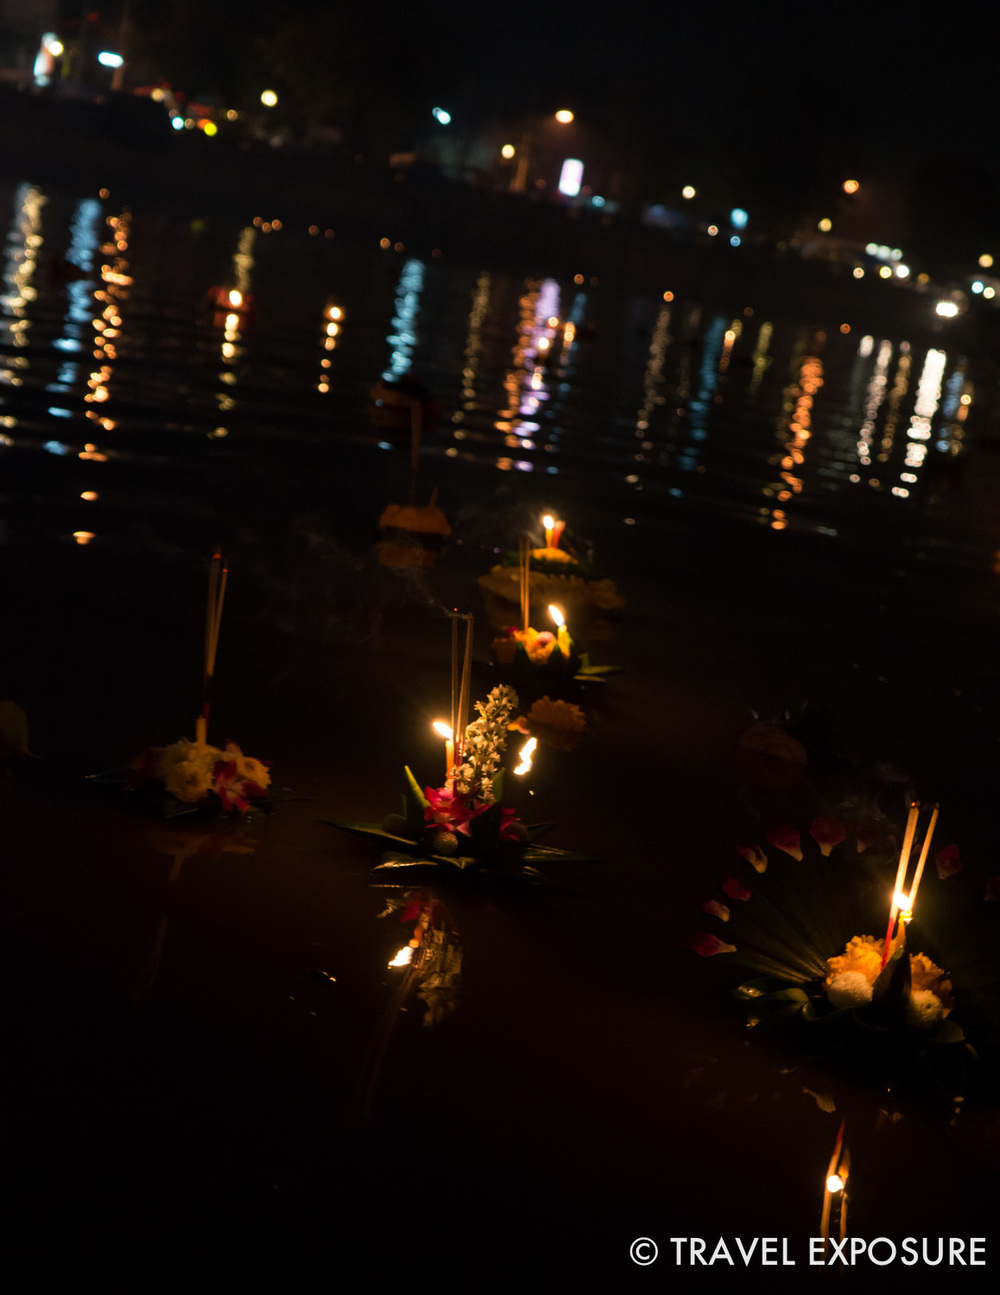 WEEK OF NOVEMBER 10 Offerings of flowers, candles and incense float on the river during the Loy Krathong Festival in Chiang Mai, Thailand.